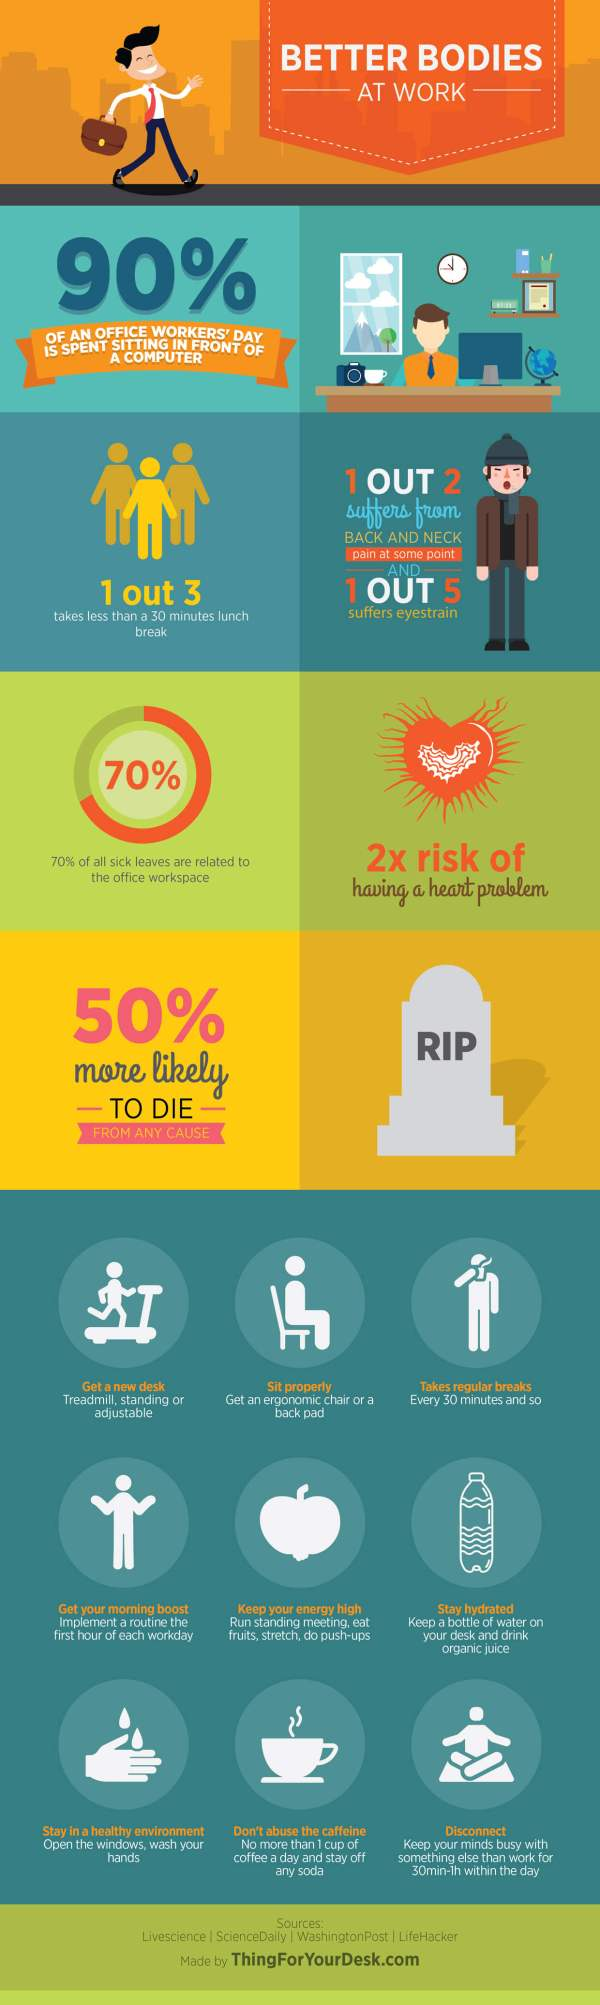 better-bodies-at-work-infographic-small